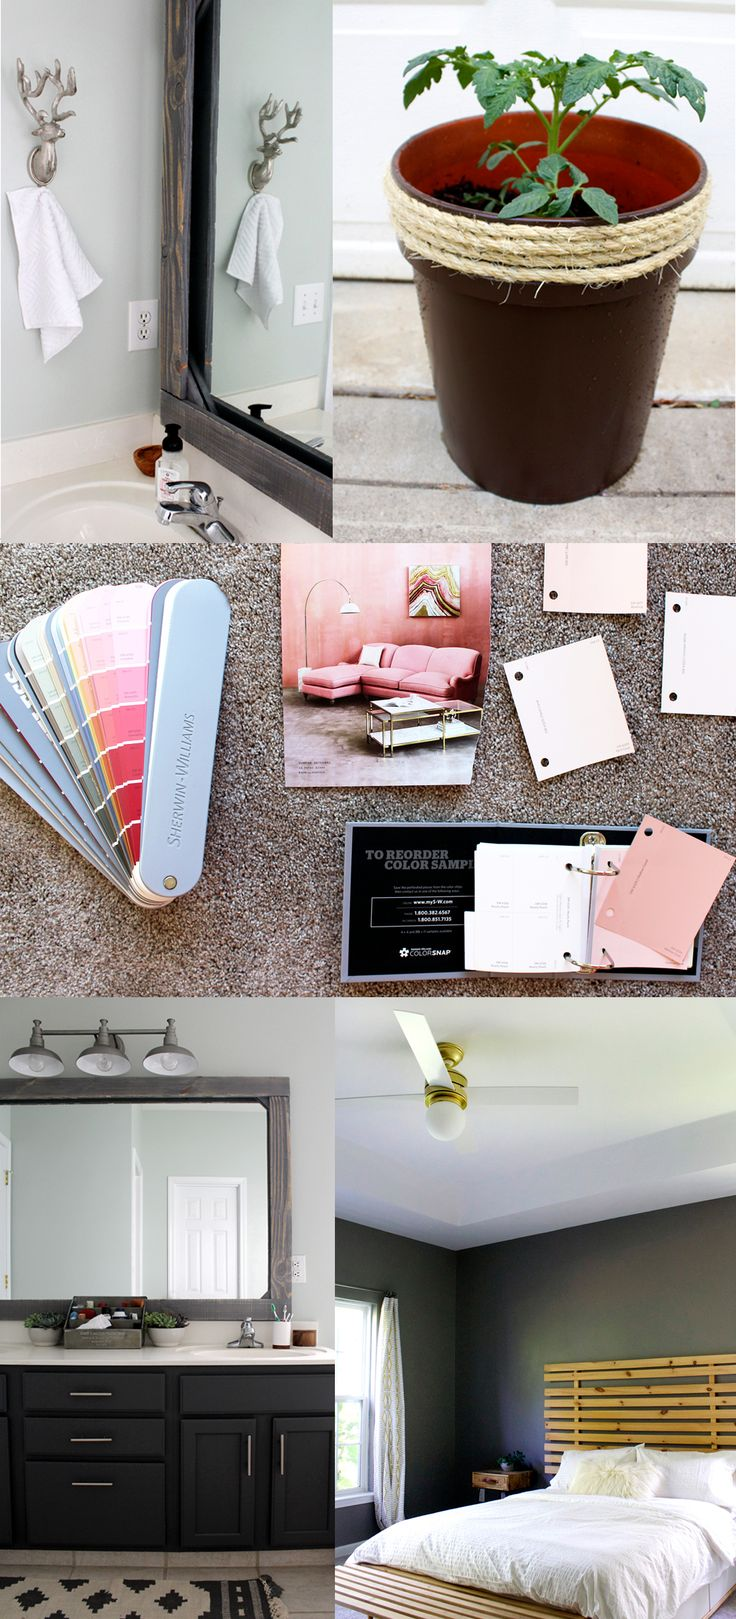 Home decorating diy projects the most popular articles on for Home design diy